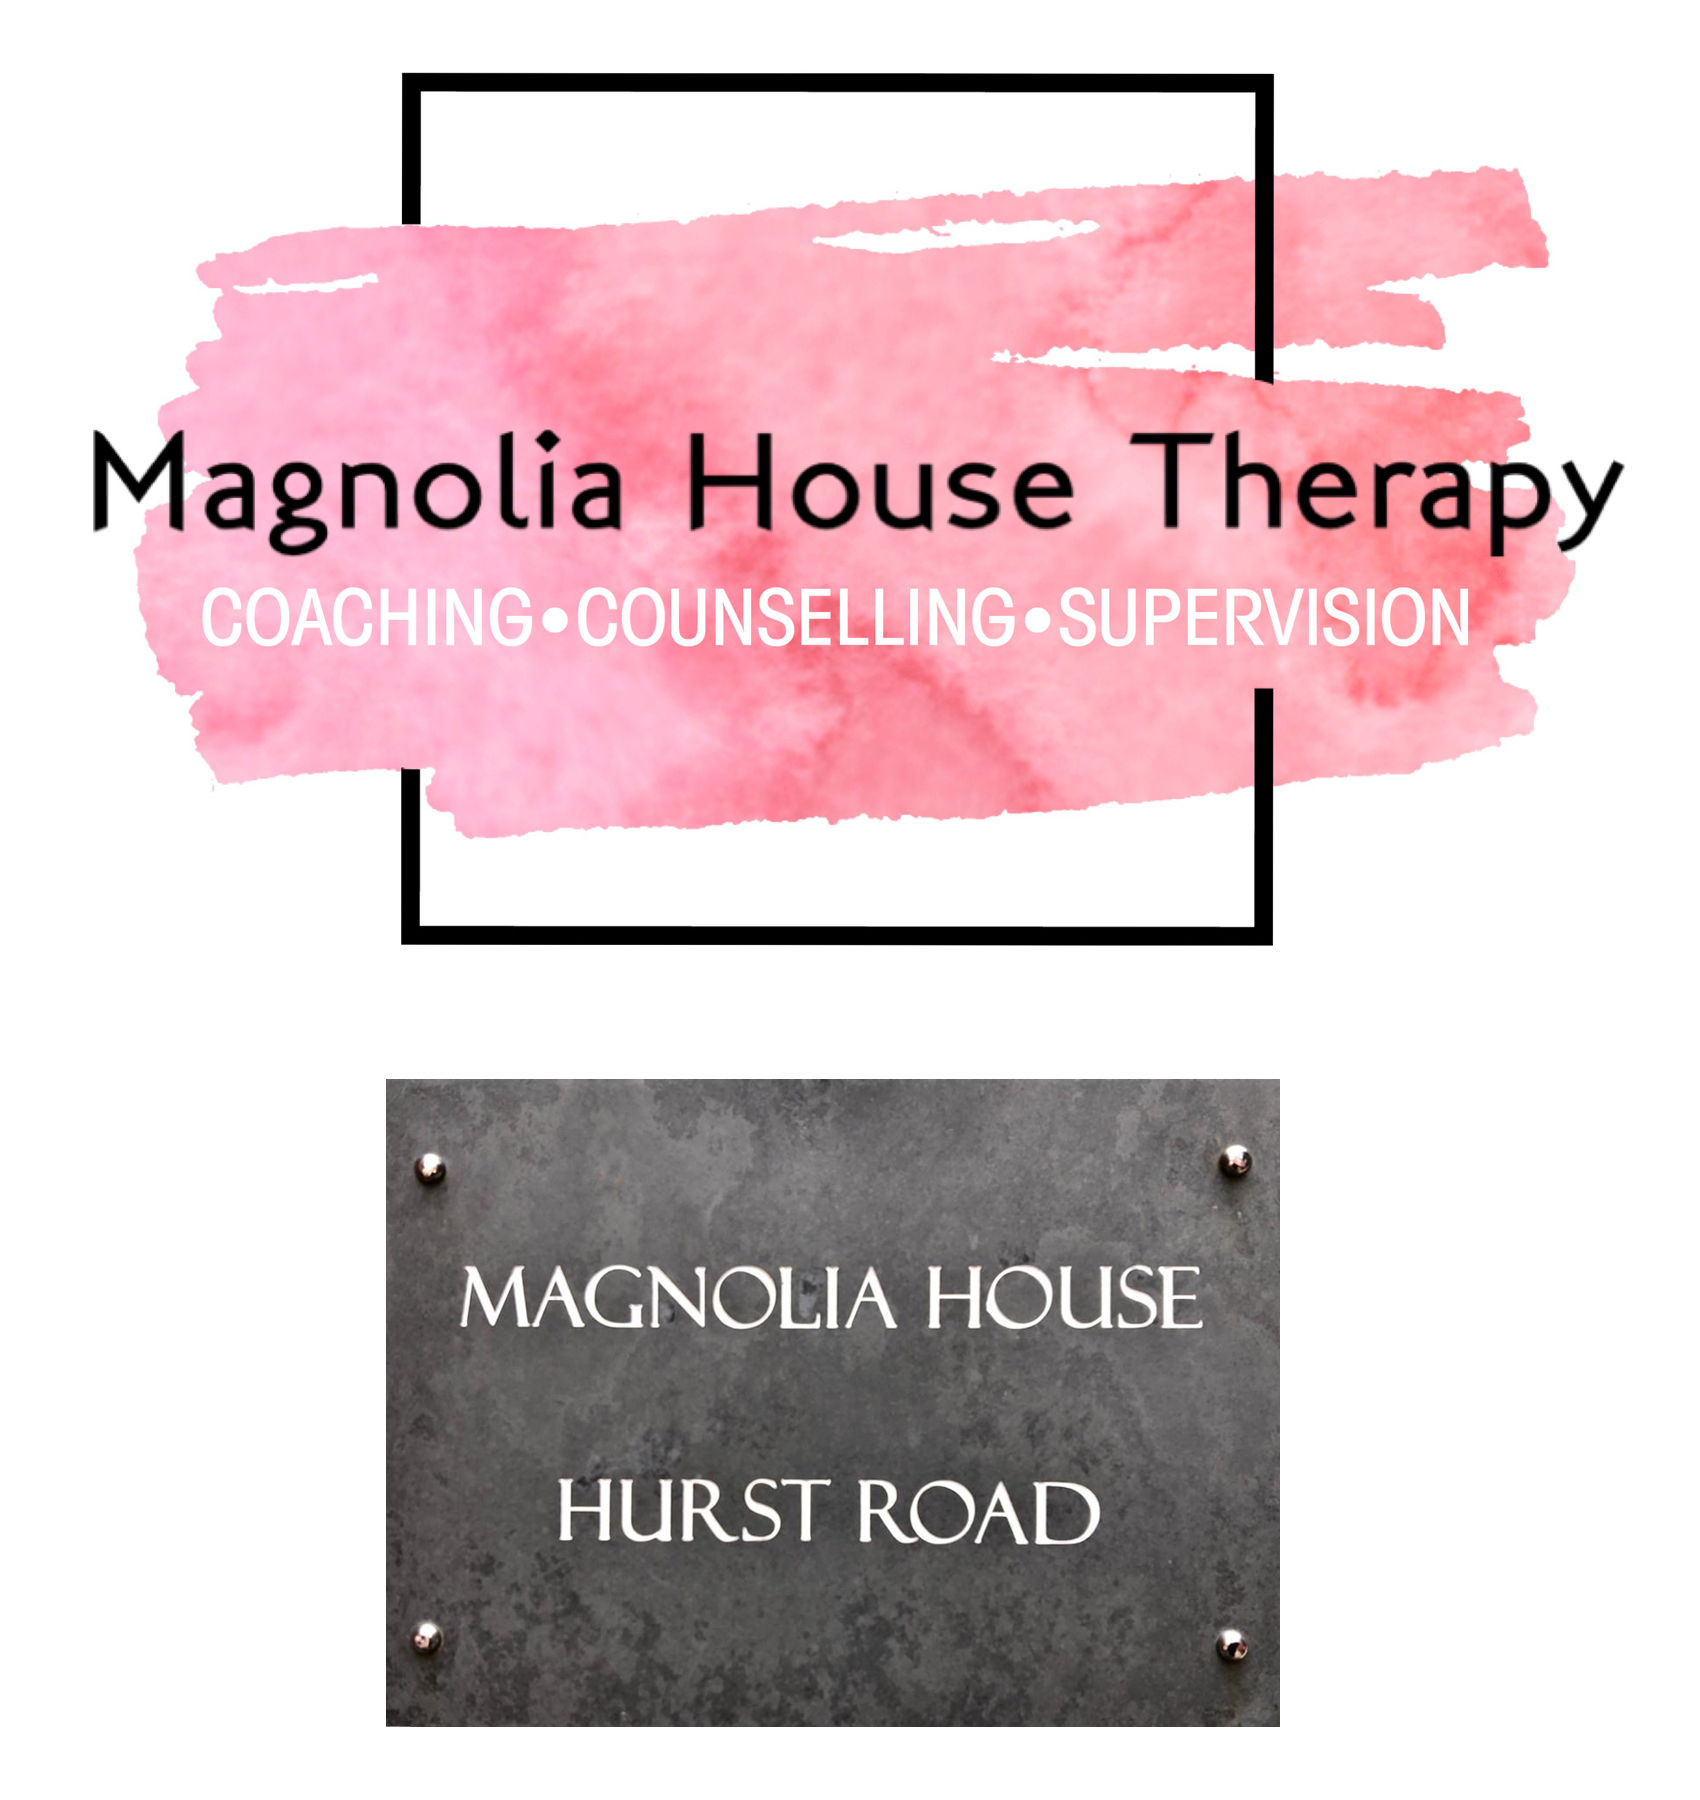 Magnolia House Therapy